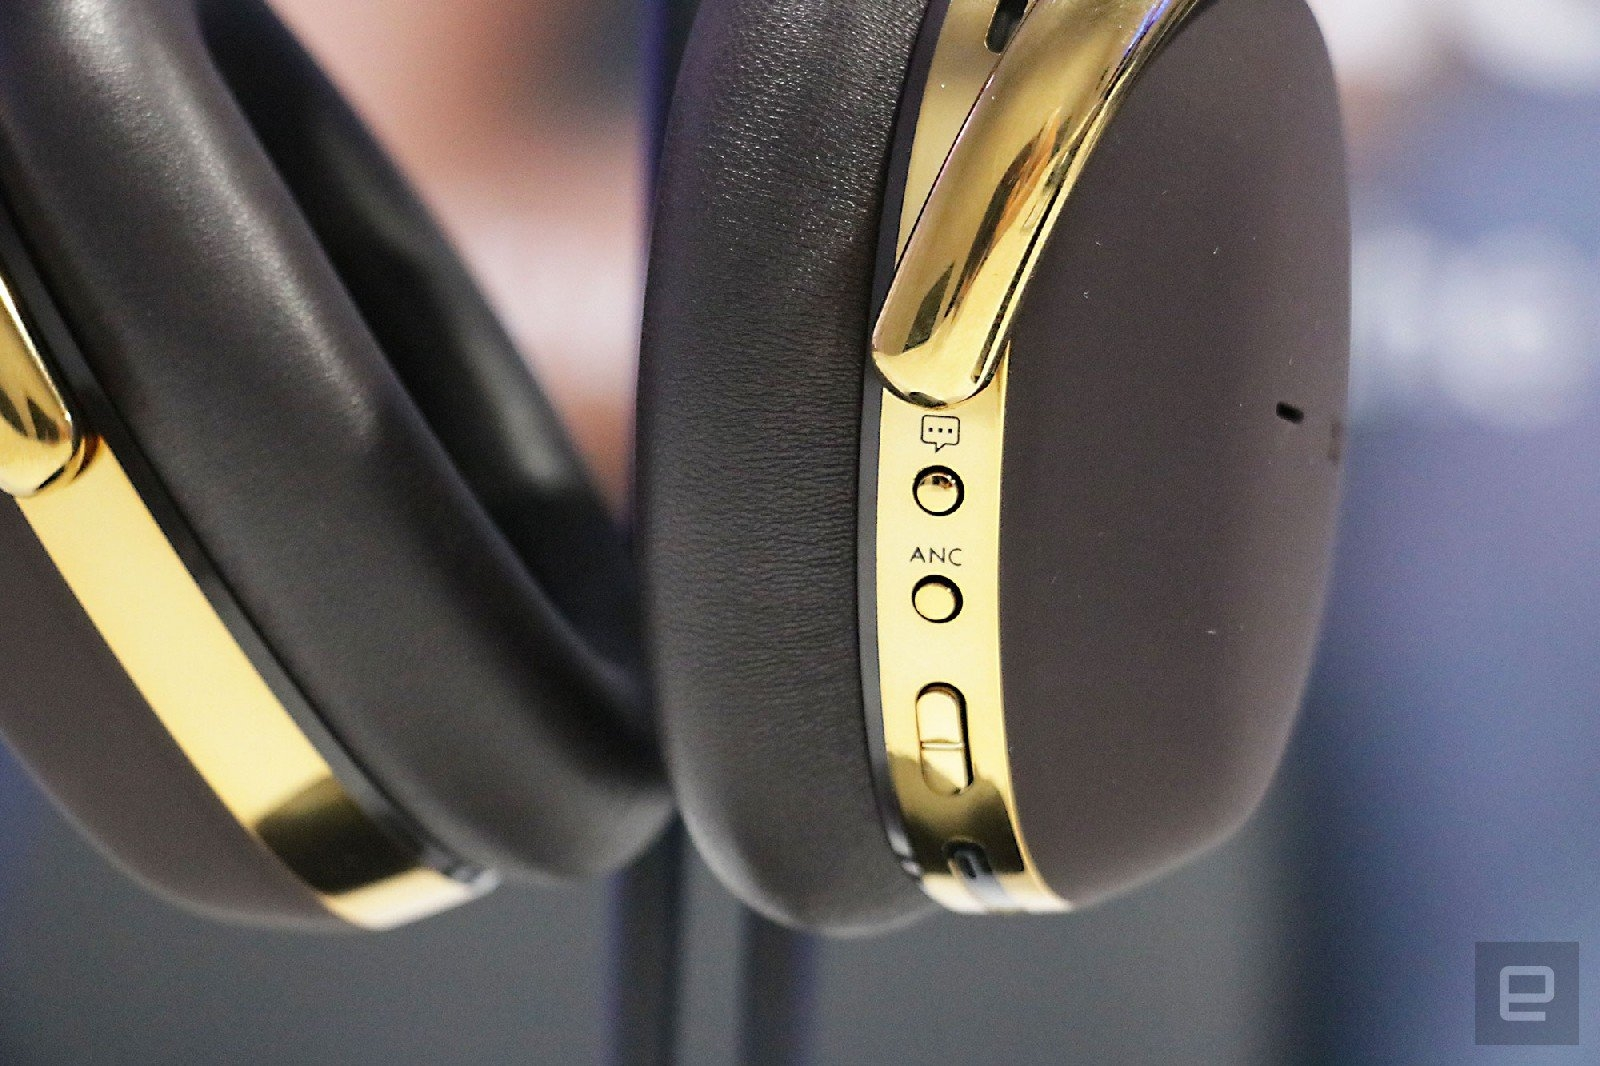 Montblanc's first wireless headphones cost a steep $600 | DeviceDaily.com